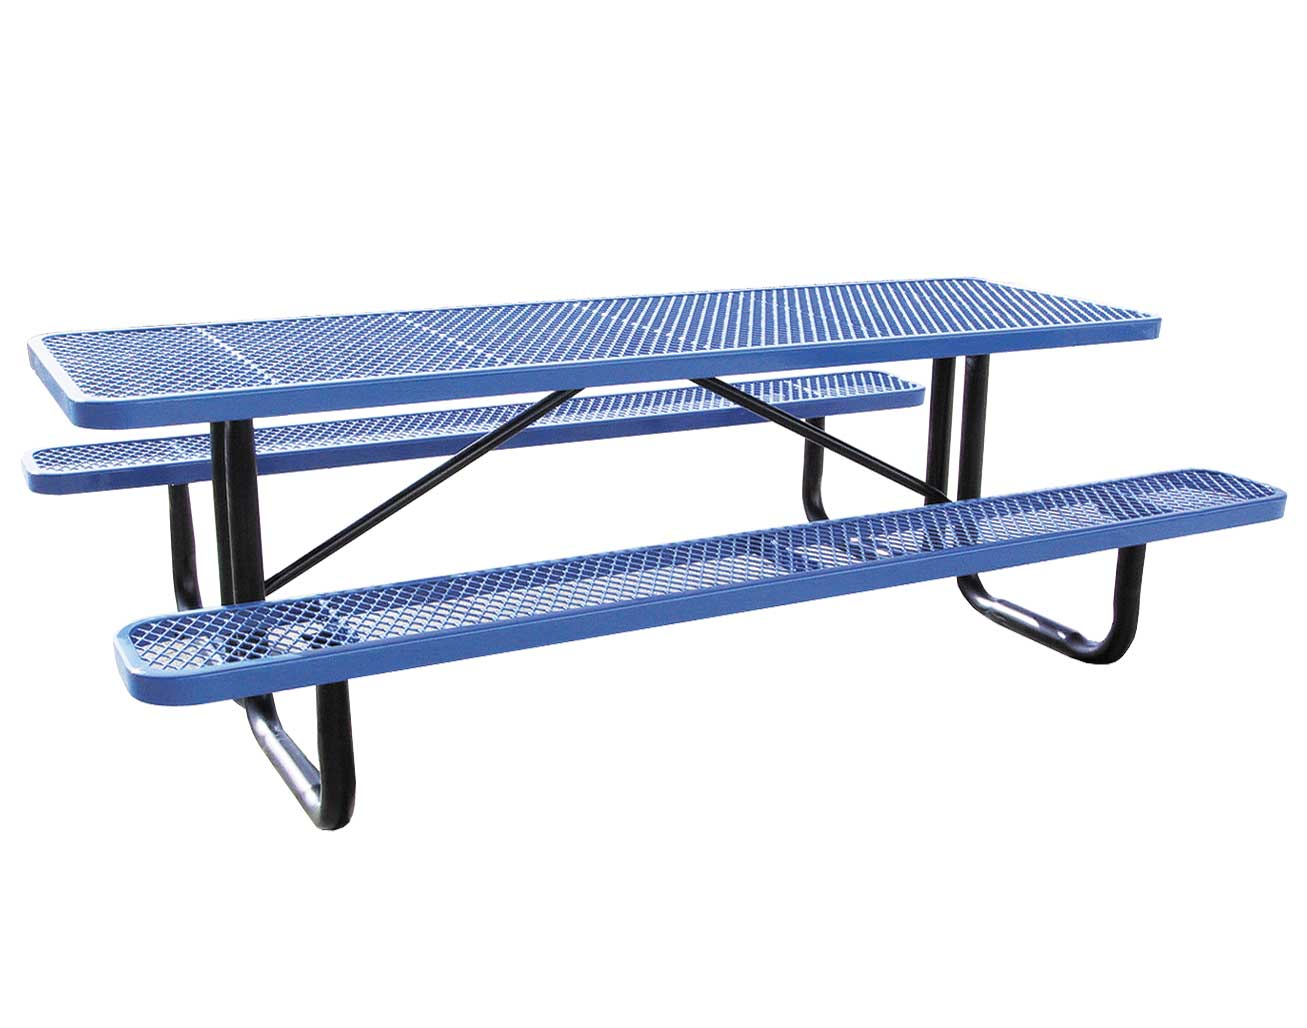 Standard expanded metal picnic table